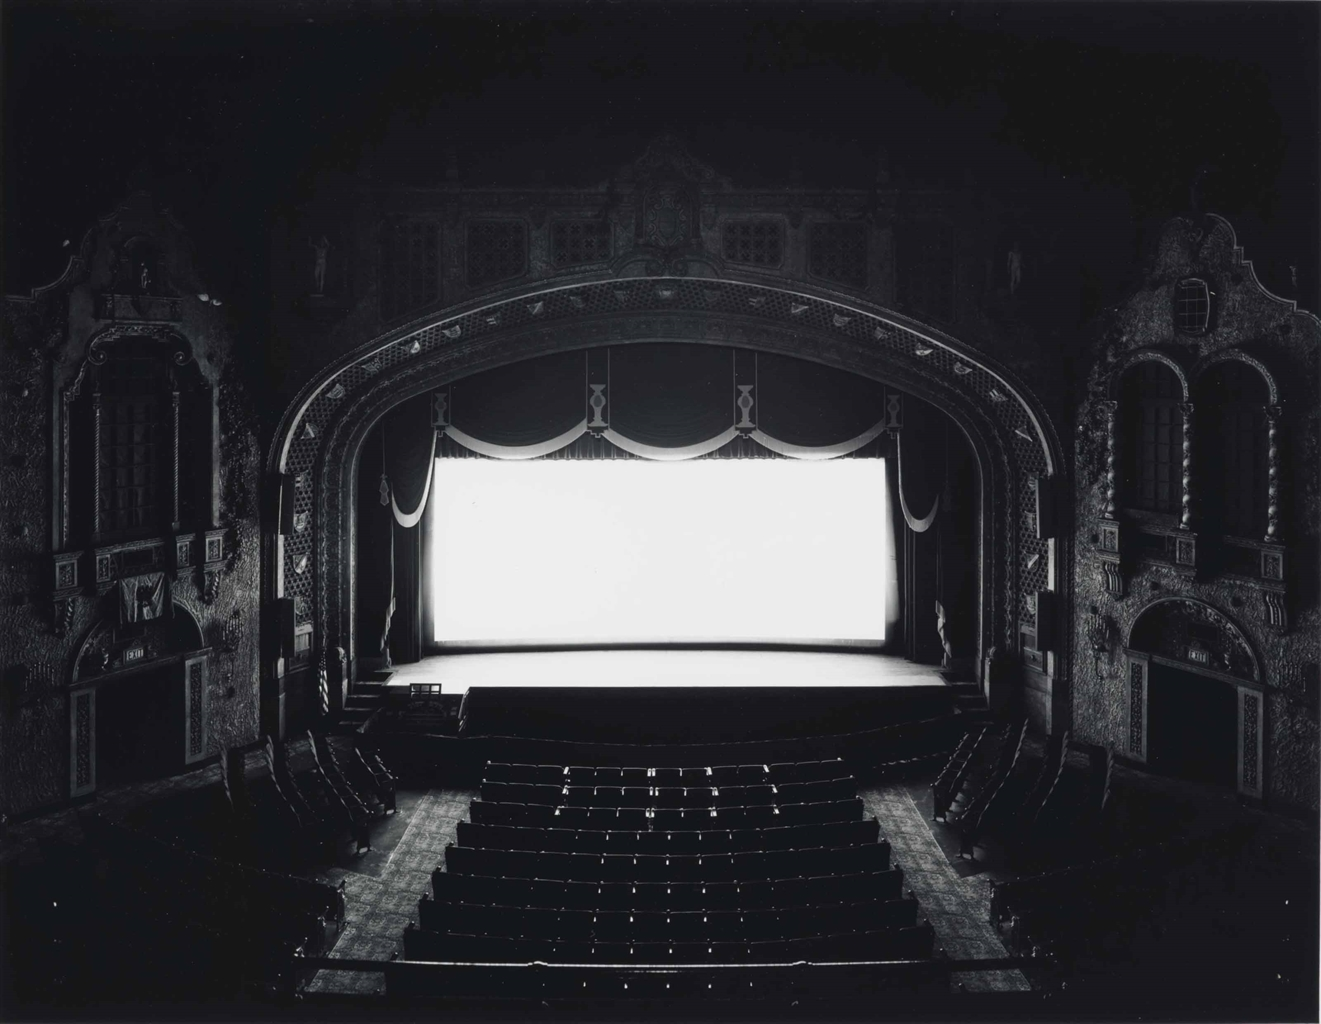 Hiroshi Sugimoto (b.  1948), Marion Palace, Ohio, 1980. Signed, titled, dated and numbered 325 in ink (verso). Image 16¾ x 21½ in (42.6 x 54.6 cm); sheet 20 x 24 in (50.8 x 61 cm). Estimate $12,000-18,000. This lot is offered in Photographs Including Property Sold to Benefit the Elton John AIDS Foundation on 6 April 2017 at Christie's in New York